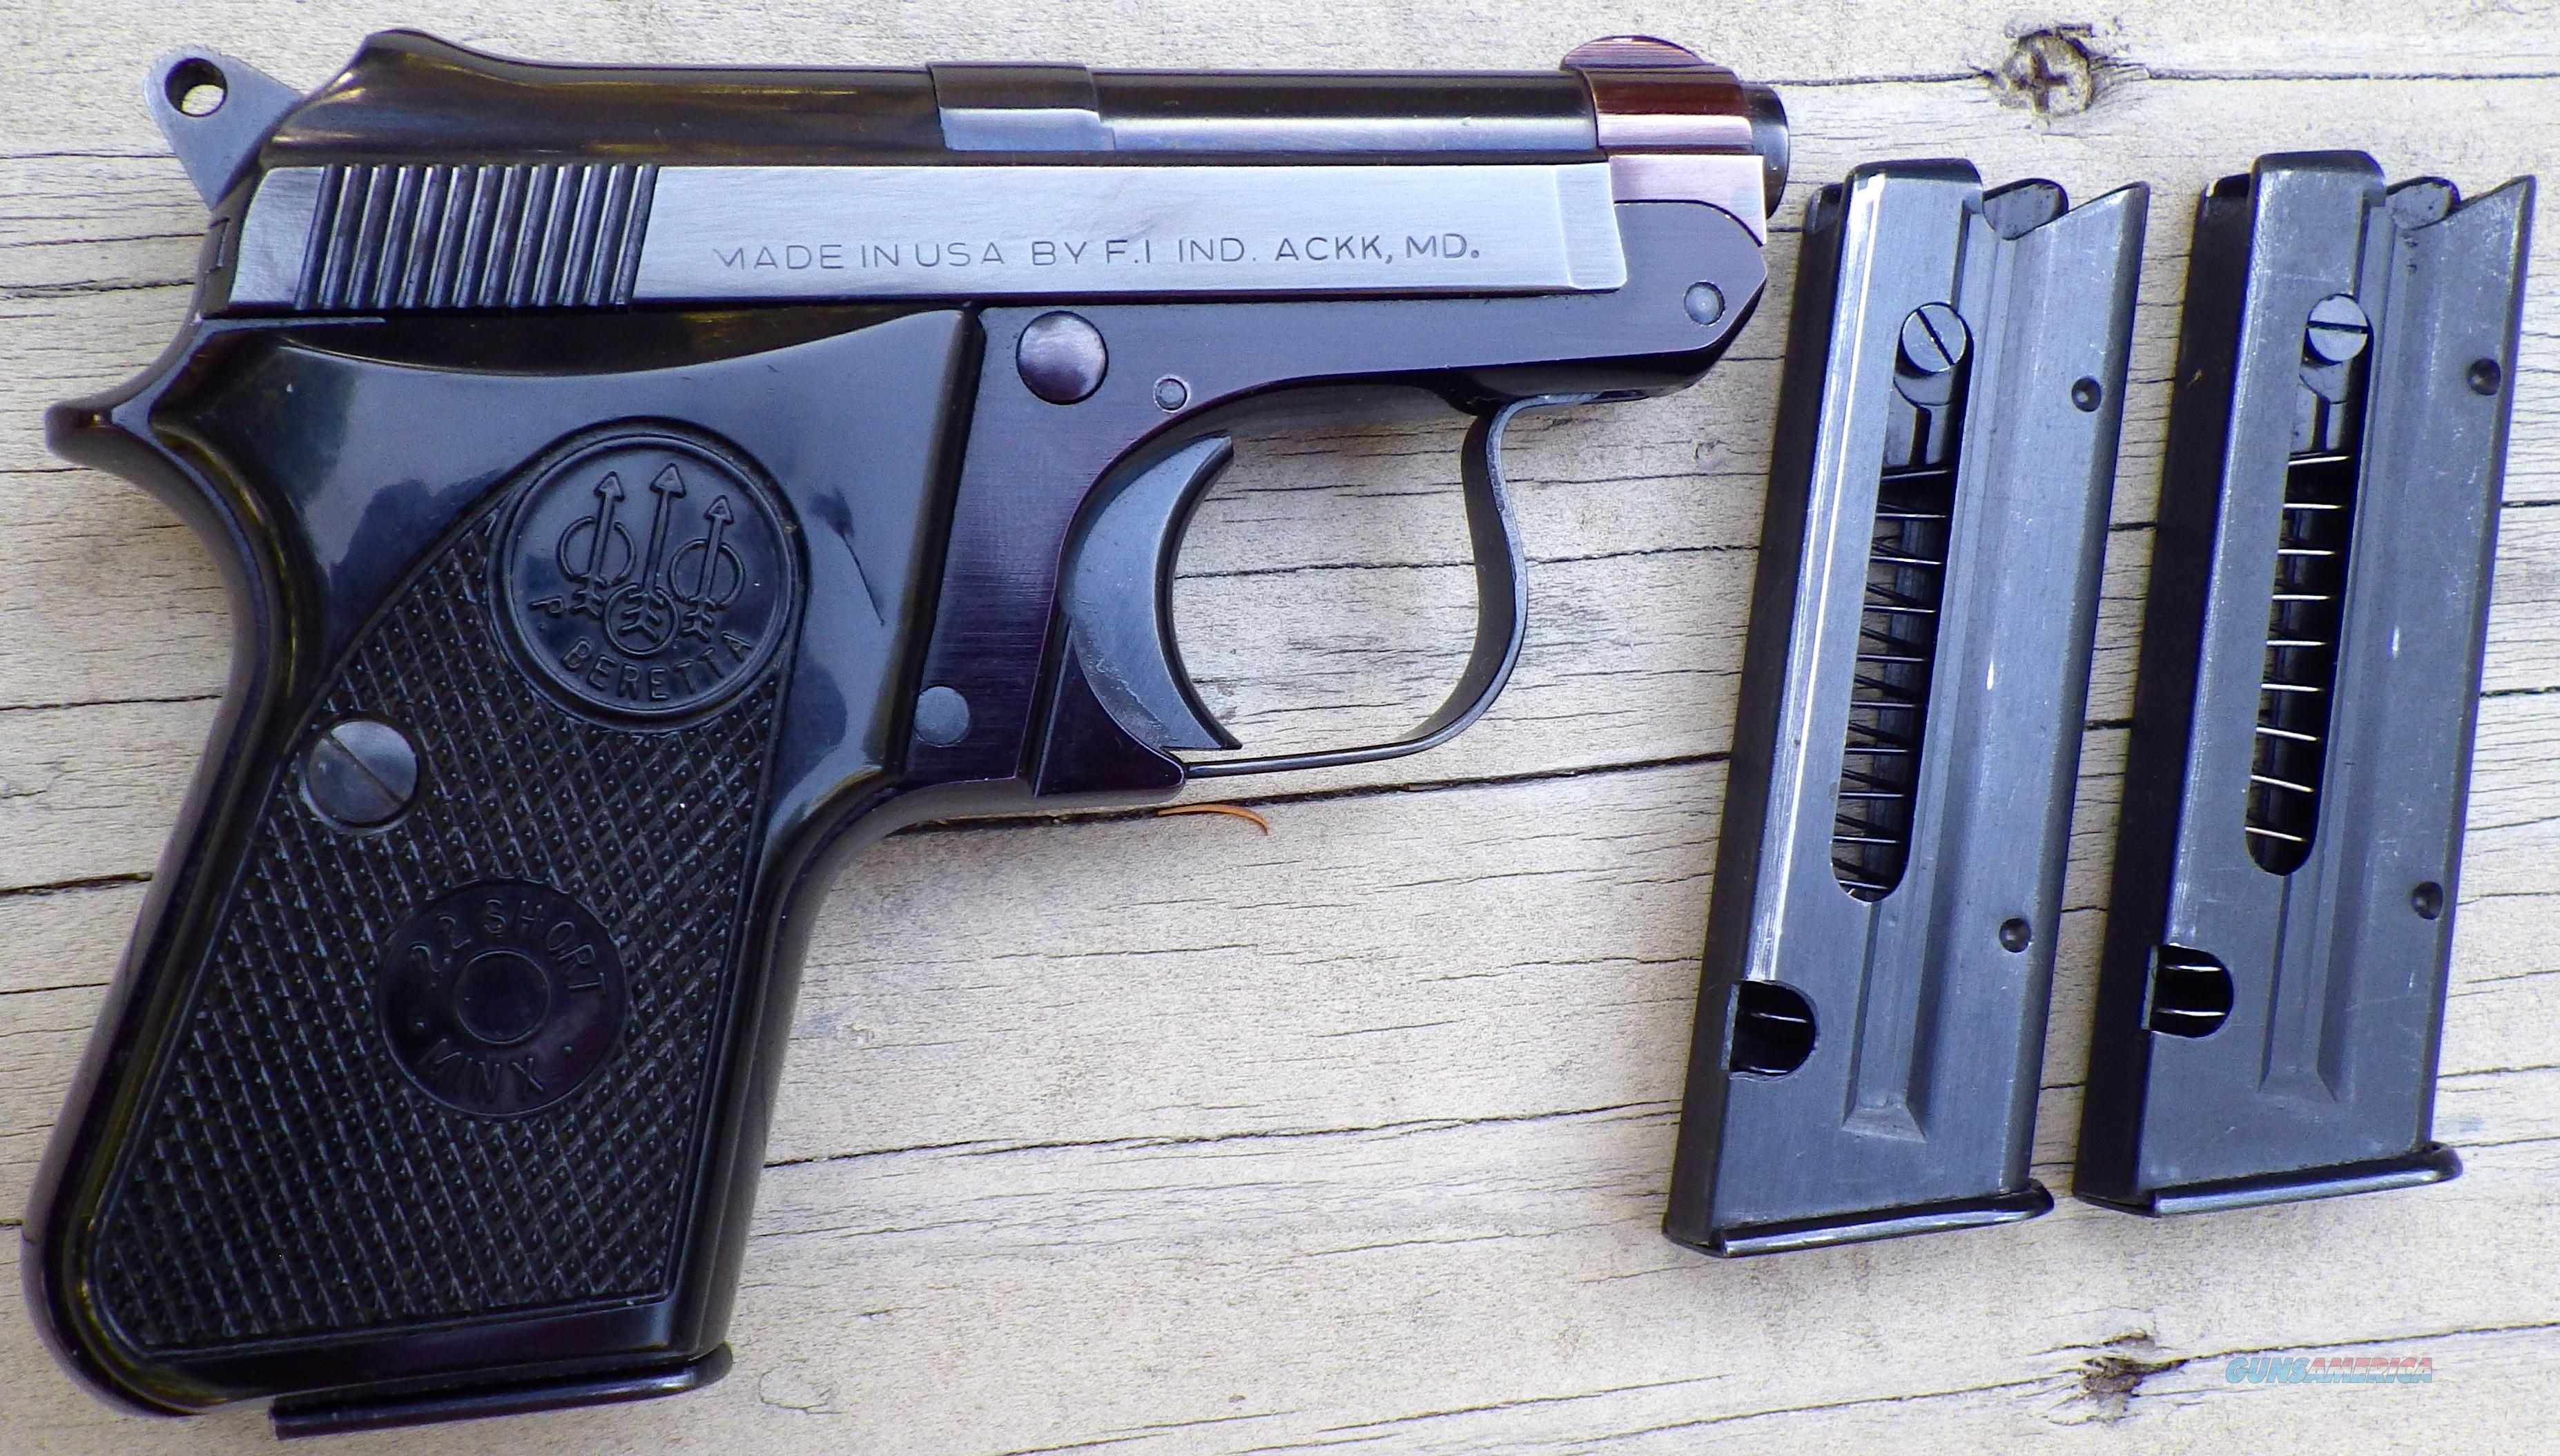 Beretta 950 BS Minx  22 Short, 3 mags, possibly unfired